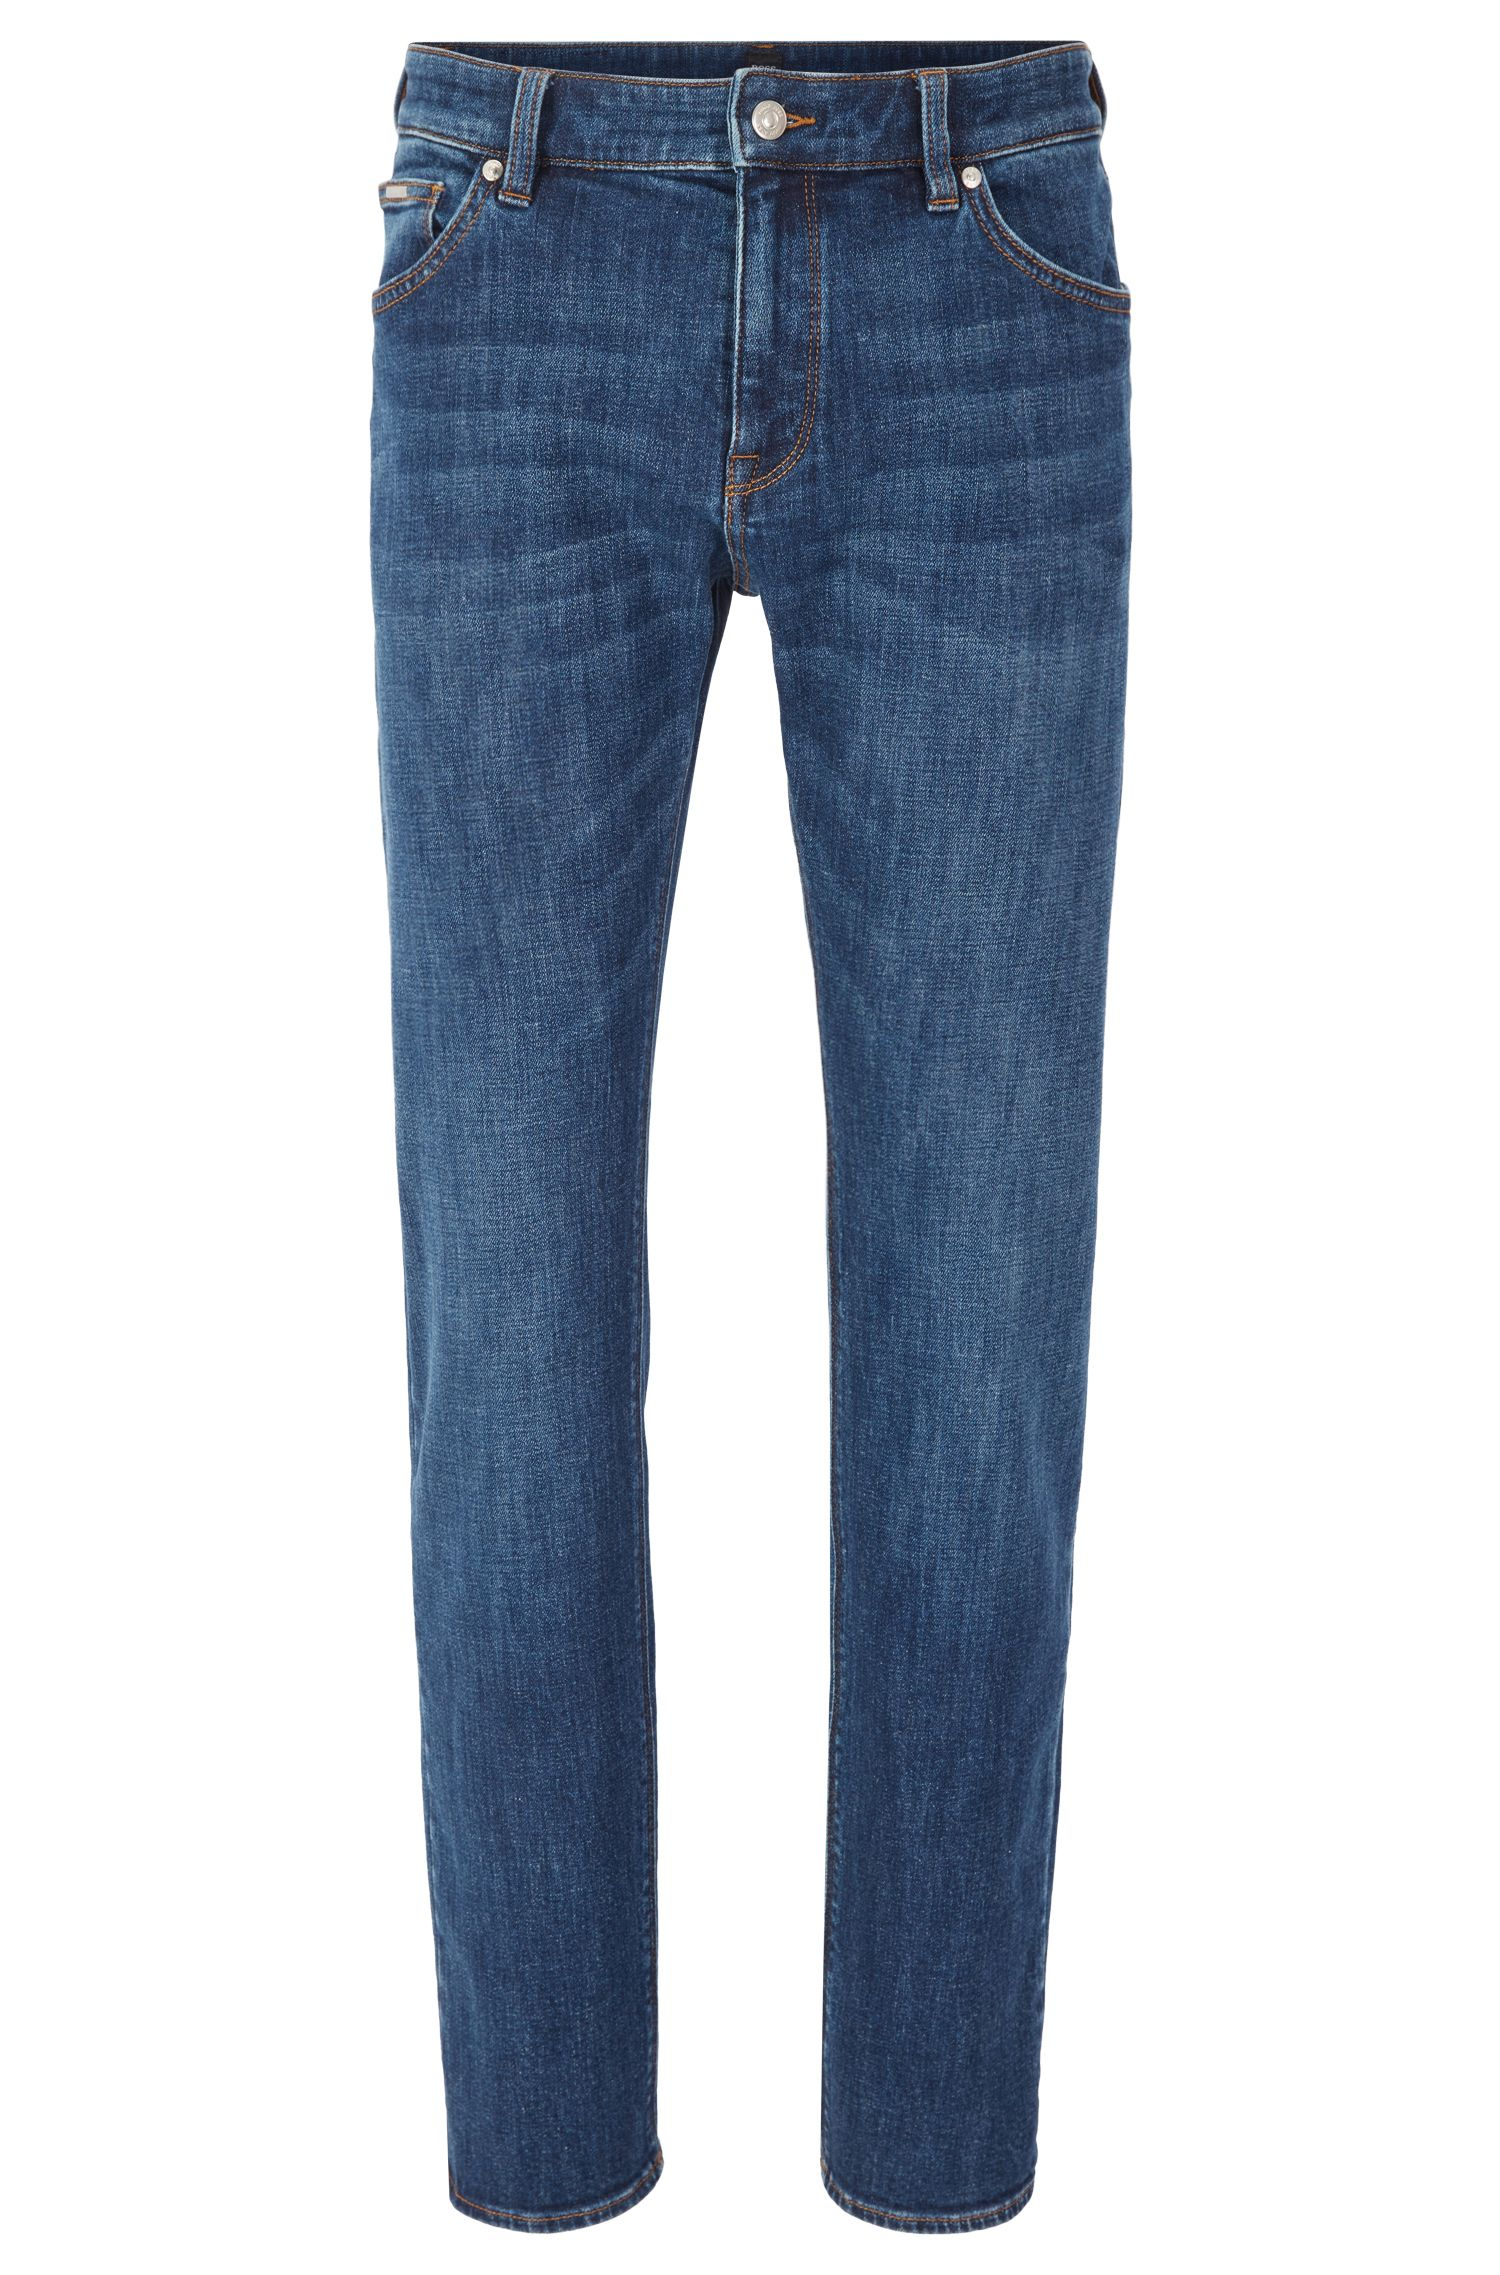 Regular-fit jeans in mid-blue stretch denim